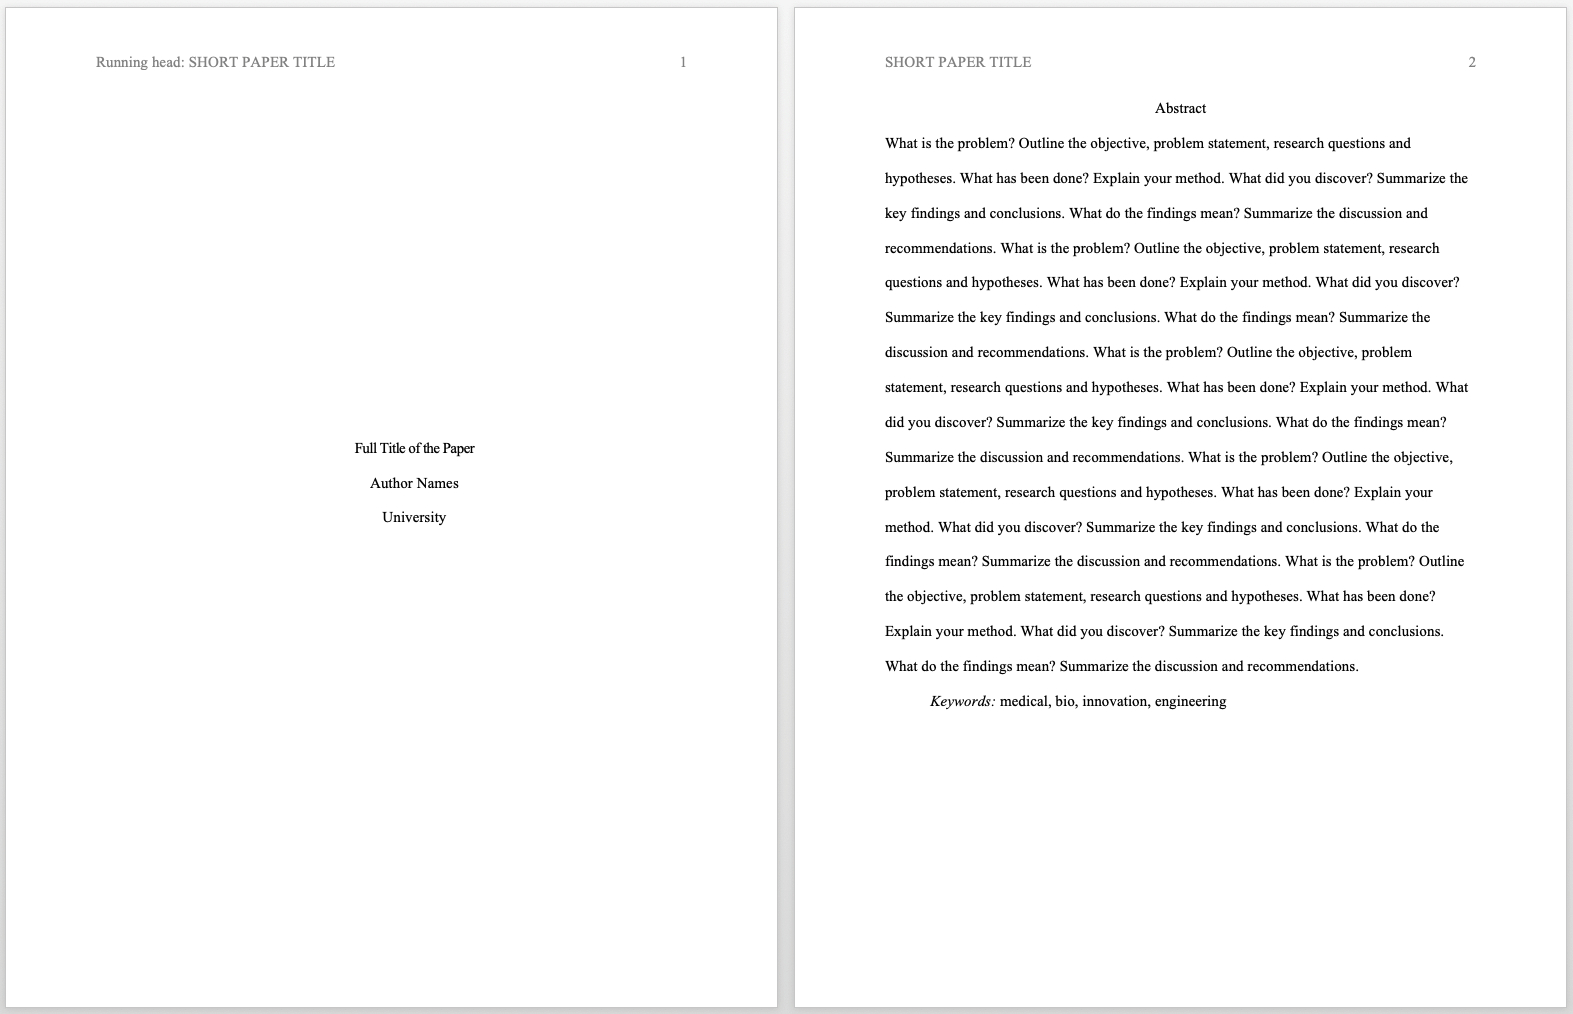 Apa Format Guidelines For Academic Papers And Essays [Template] Within Scientific Paper Template Word 2010